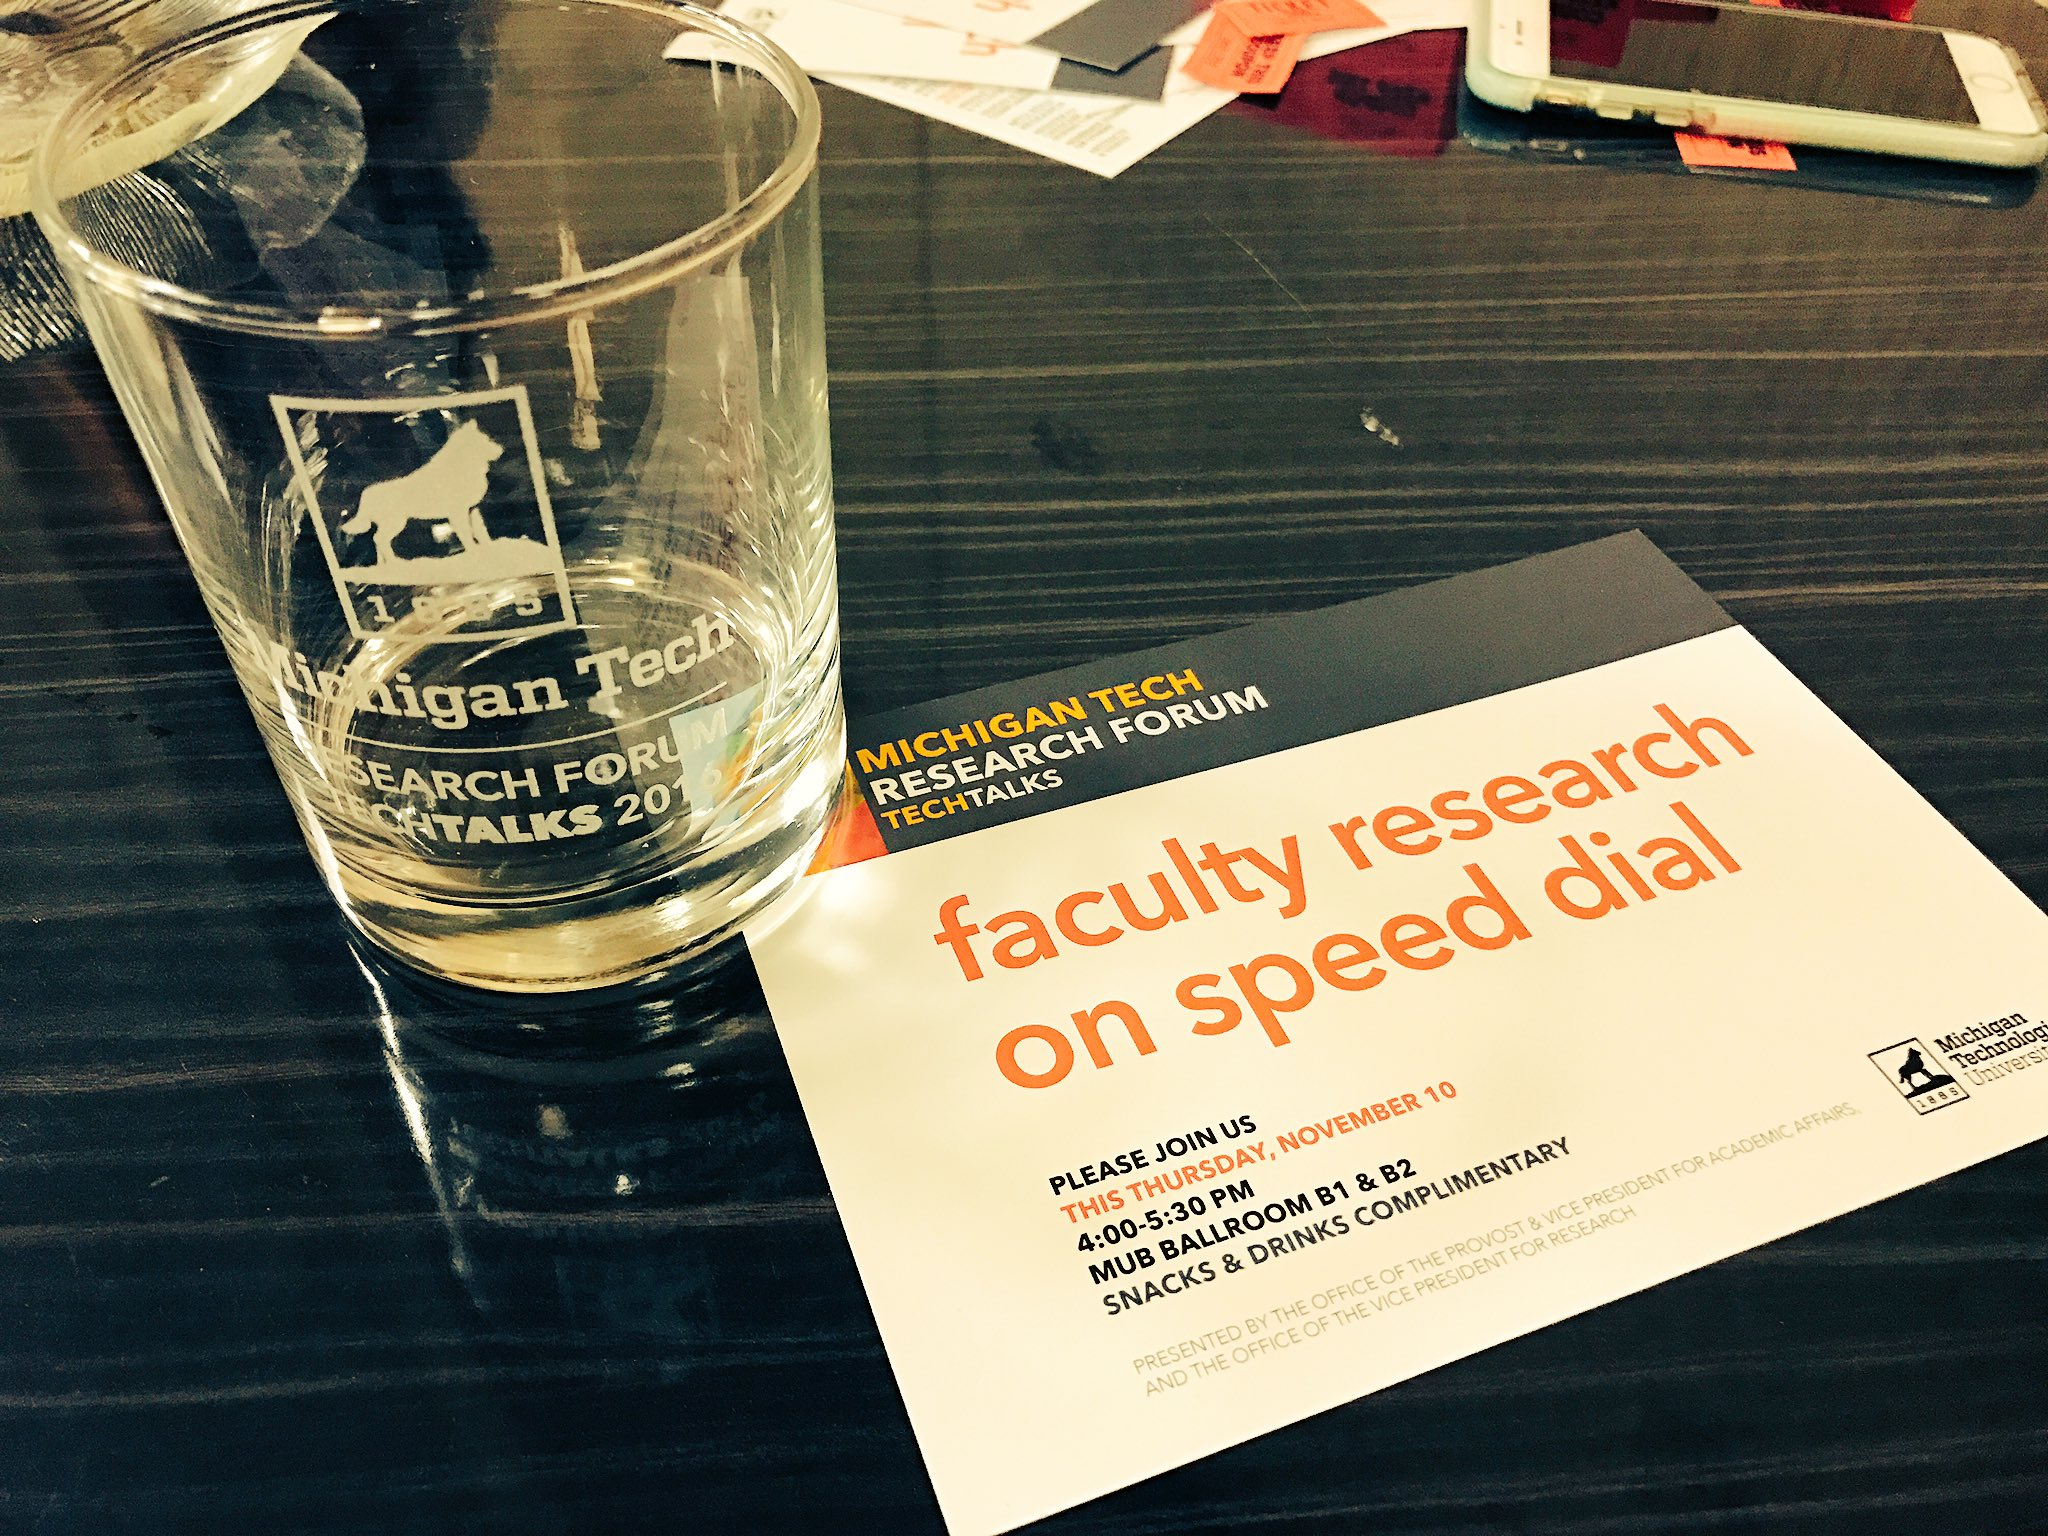 And the reward for presenting for #MTUResearchForum, a very nice cup. Nice work, presenters! That went by fast. https://t.co/XQaPlaJkl9